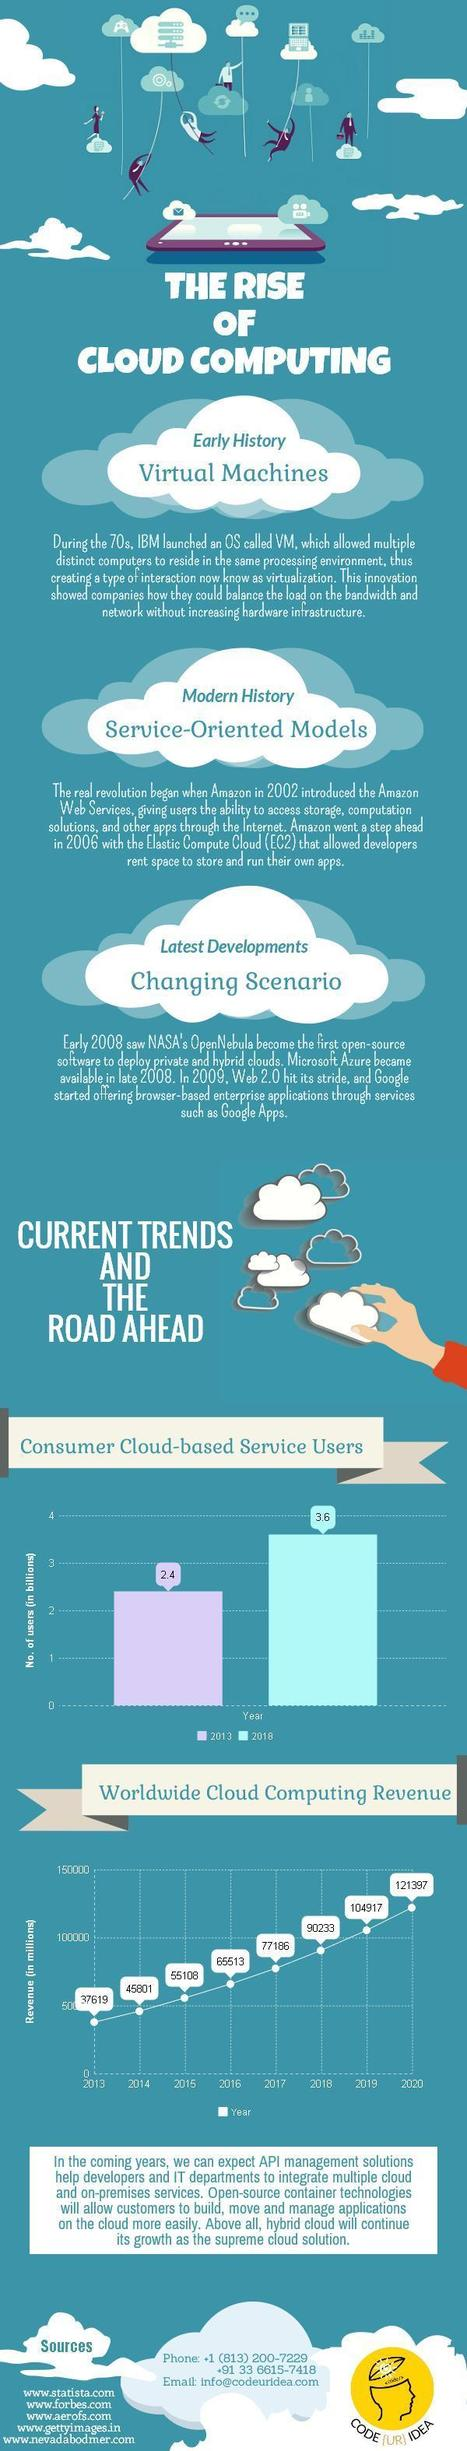 The Rise of Cloud Computing- An Infographic | Art, Entertainment & Internet Marketing | Scoop.it